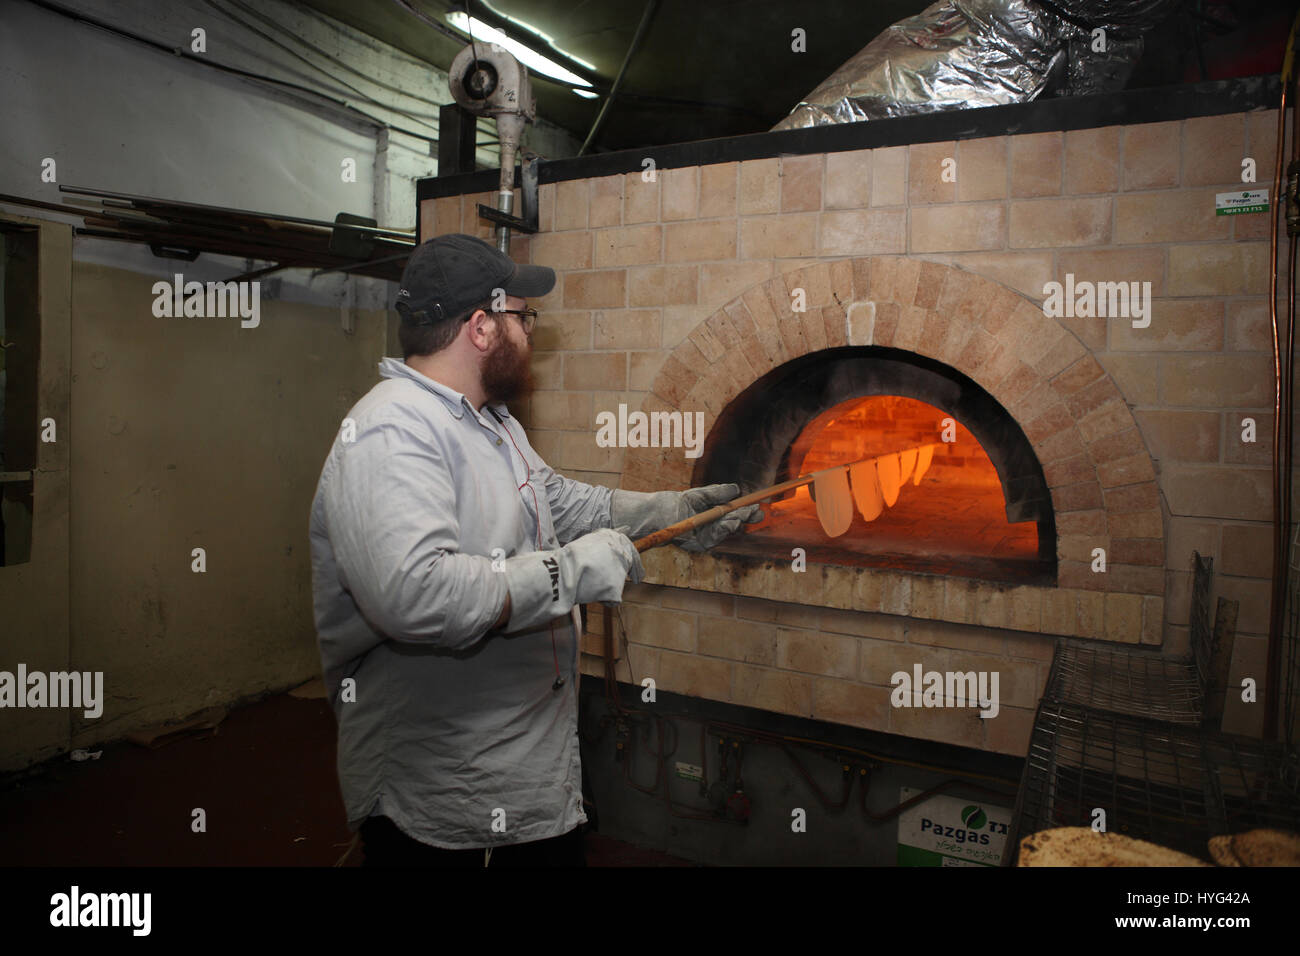 A Hasidic man uses a long stick to put flattened pieces of dough in the oven to bake Matza or Matzah Shmura for - Stock Image